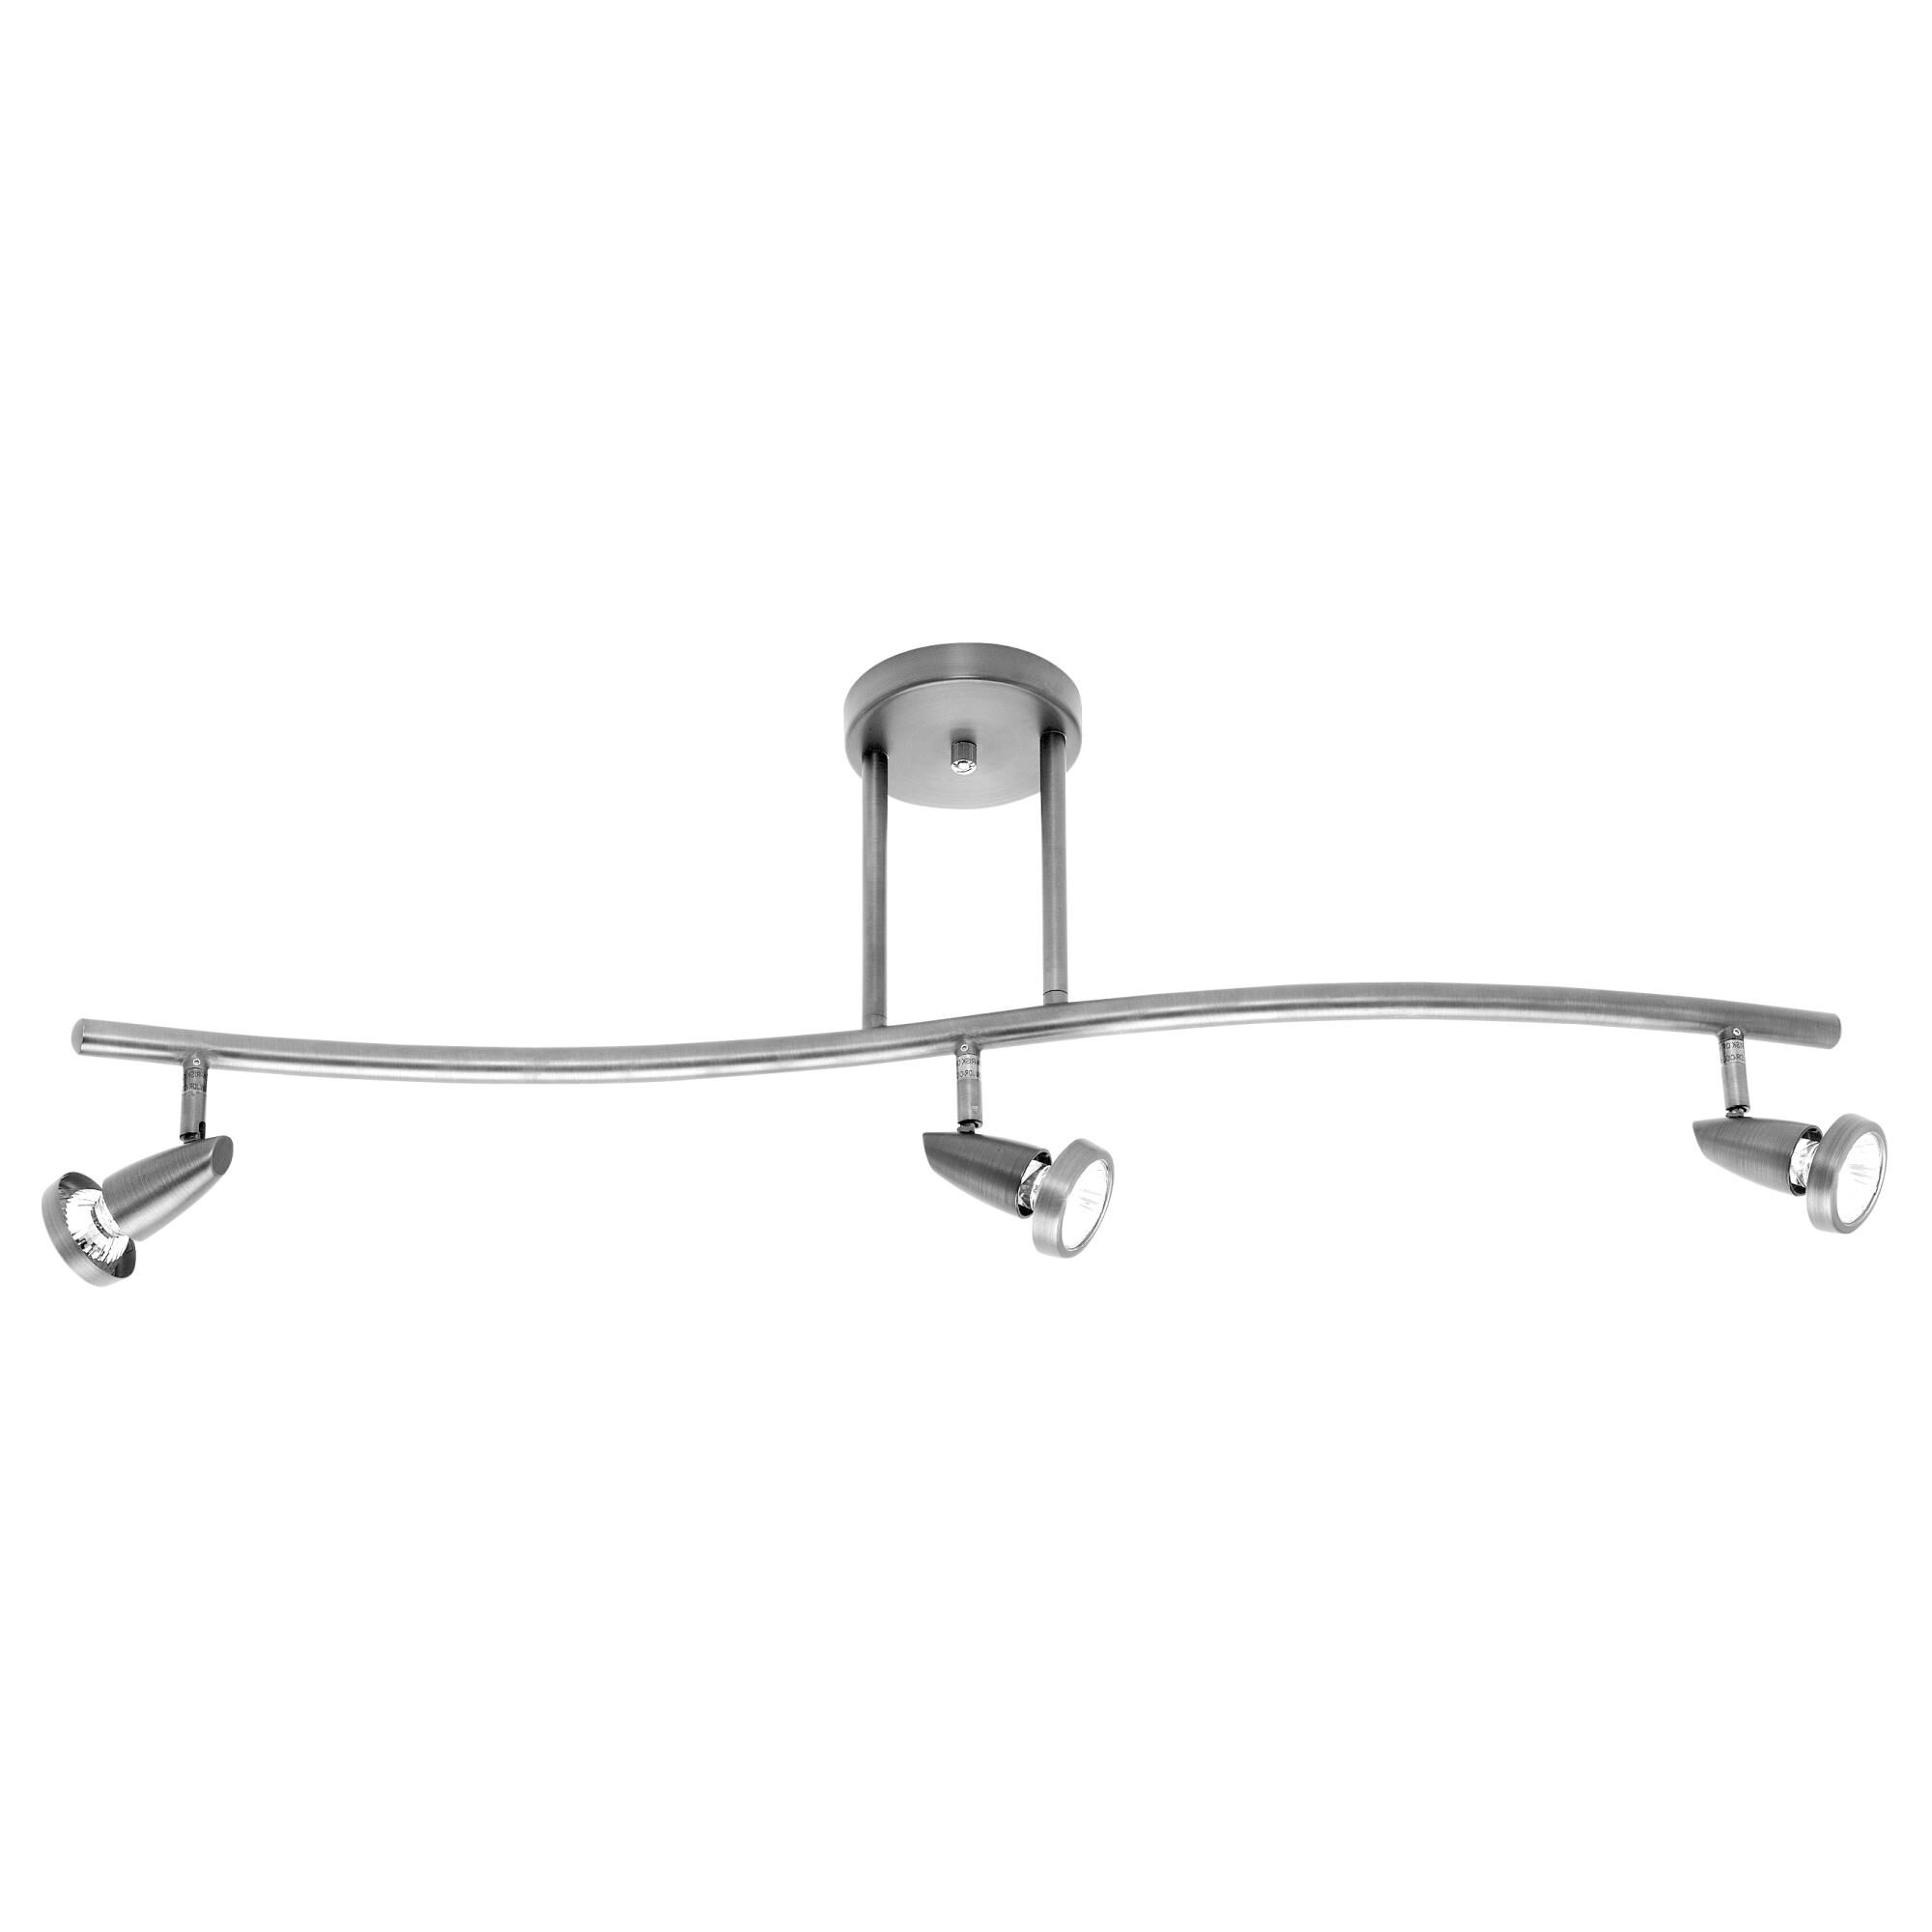 Access Lighting Mirage Directional Head Mirage 52223LEDDLP BS Modern Contemporary